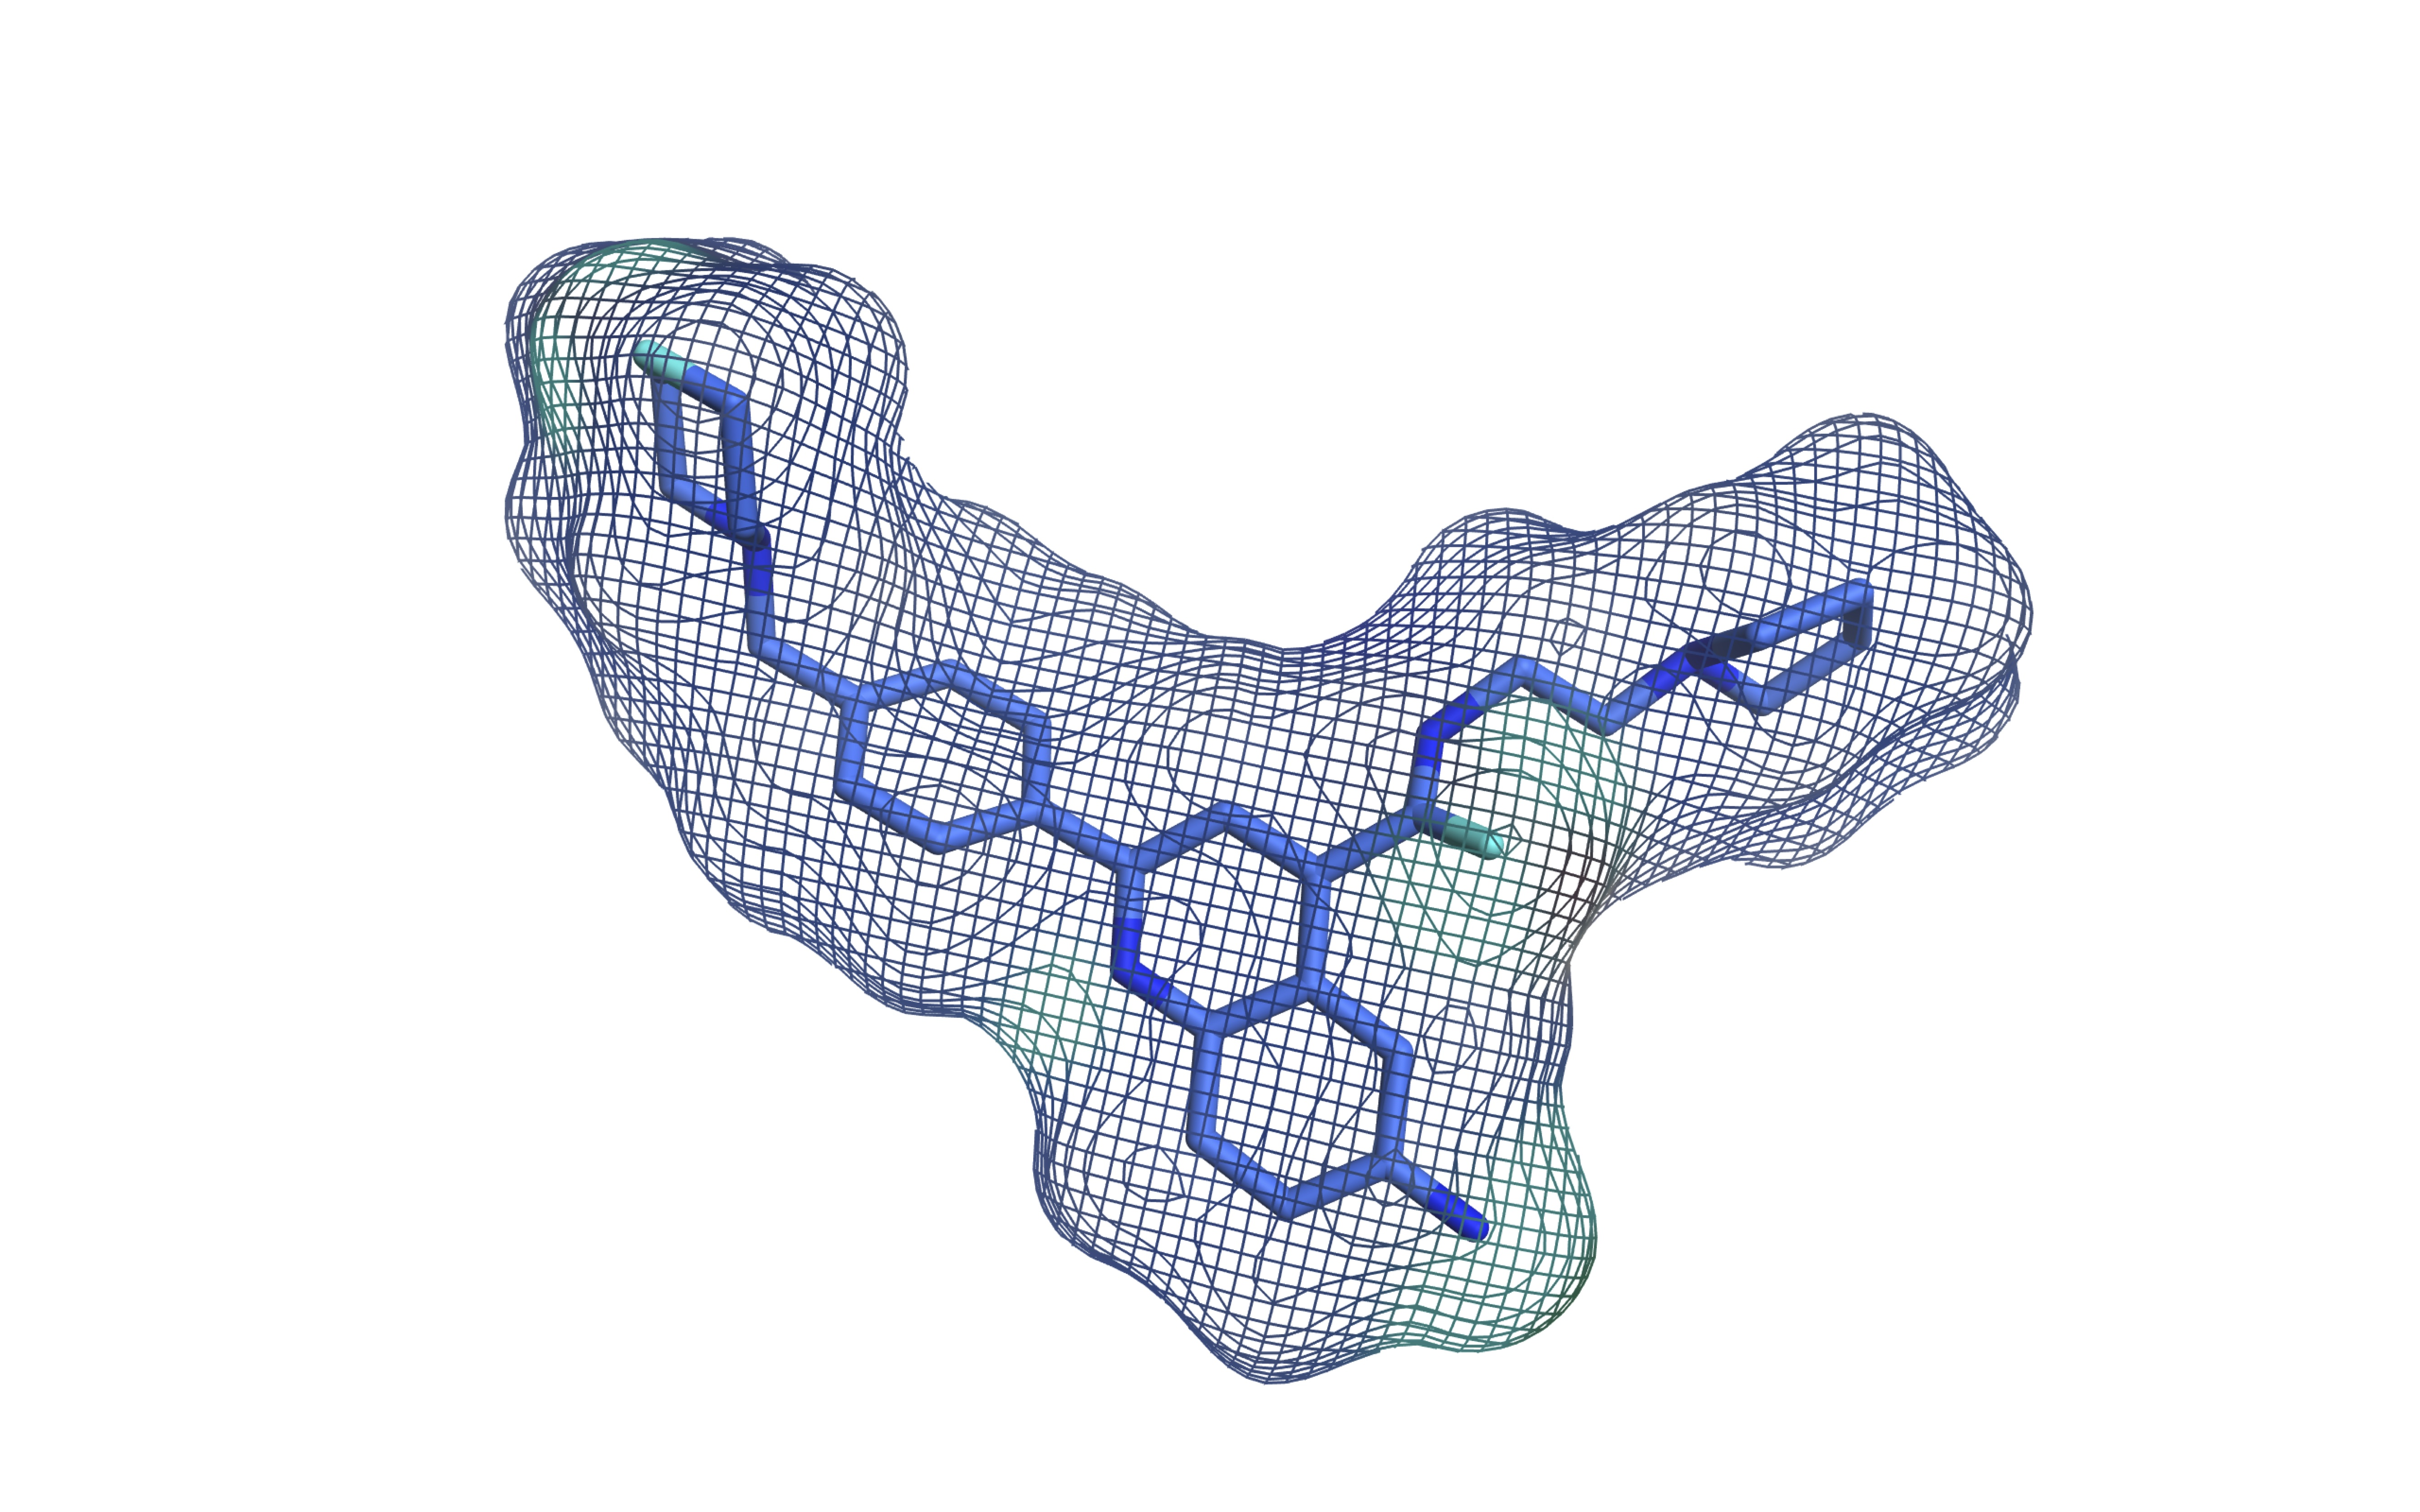 DDD107498: A novel Compound that can cure Malaria in a single dose